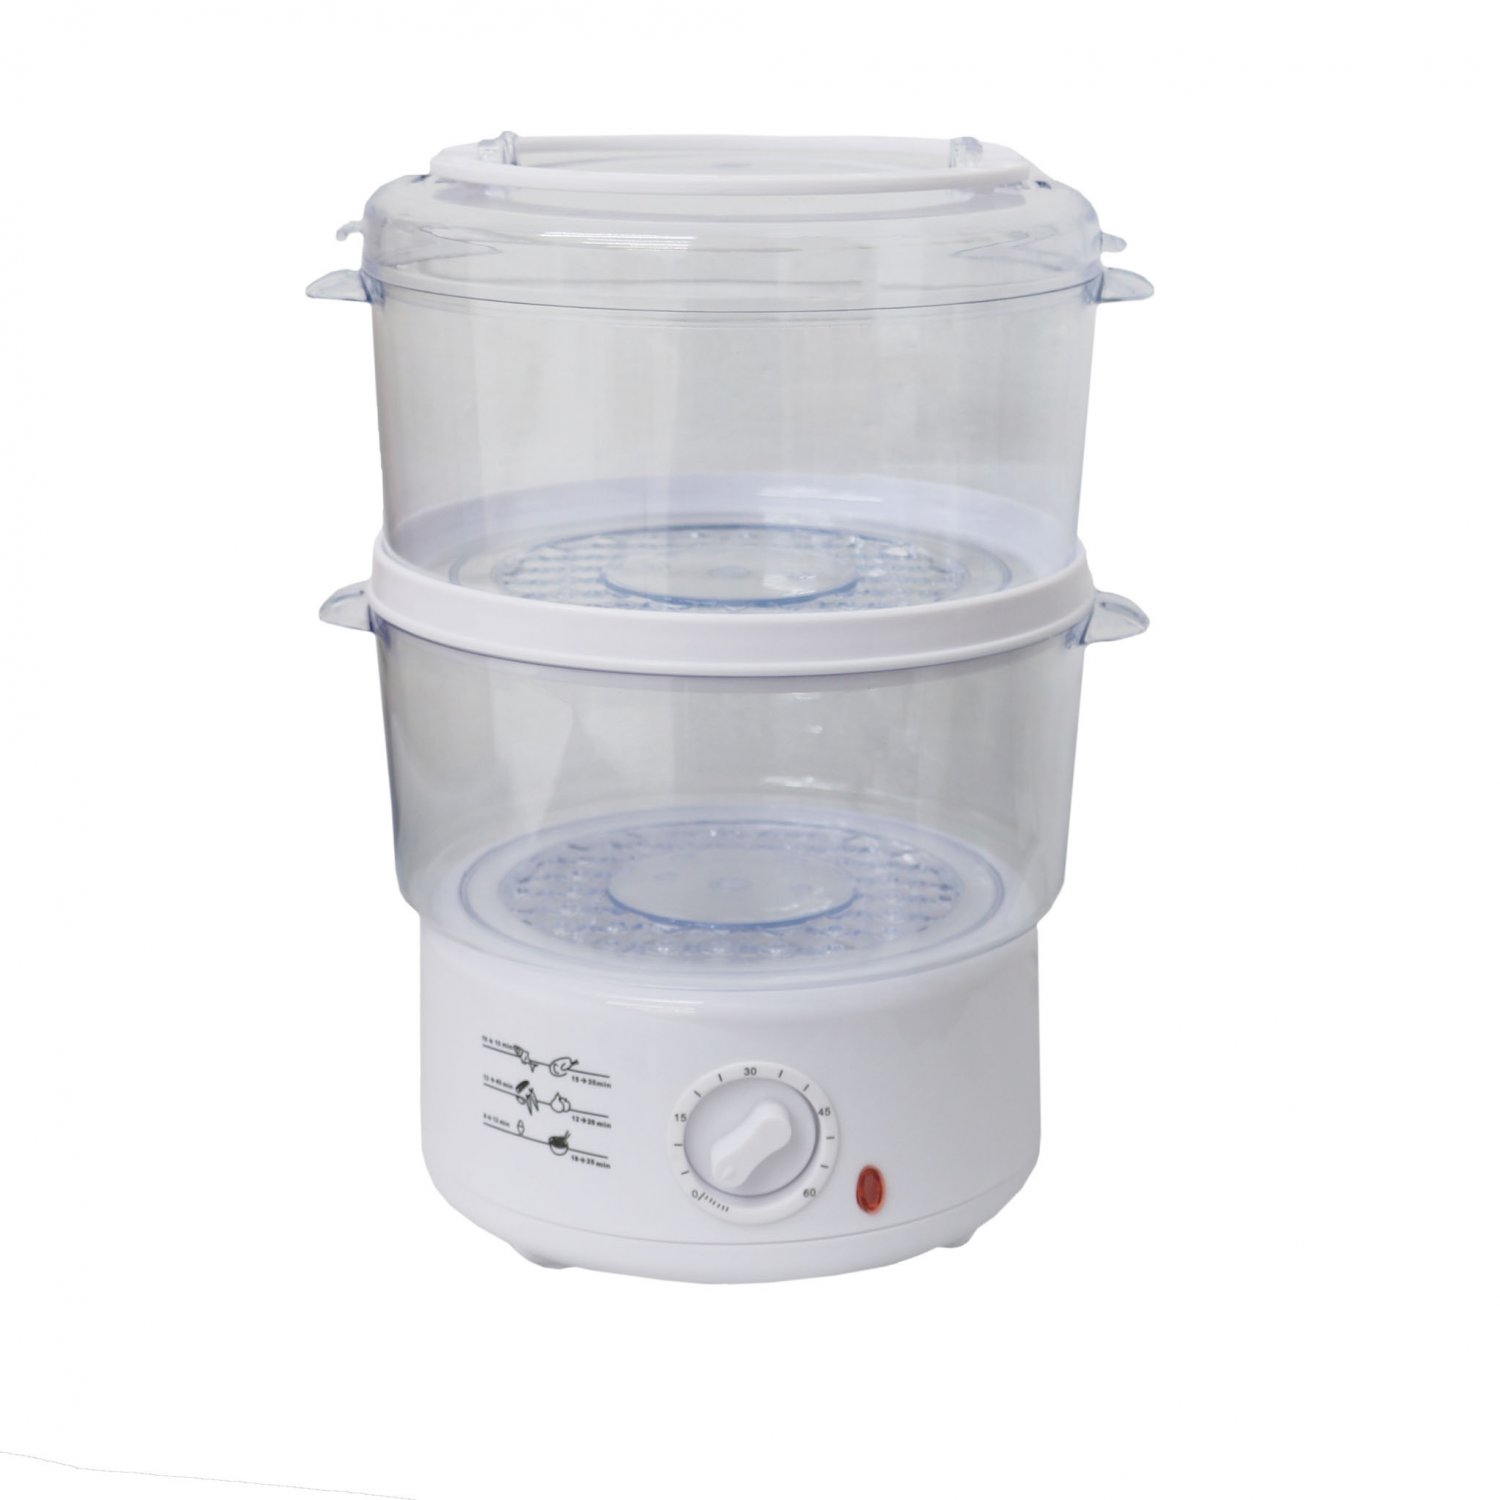 Electric Steam Cooker ~ Layer l compact electric food steamer steam cooker